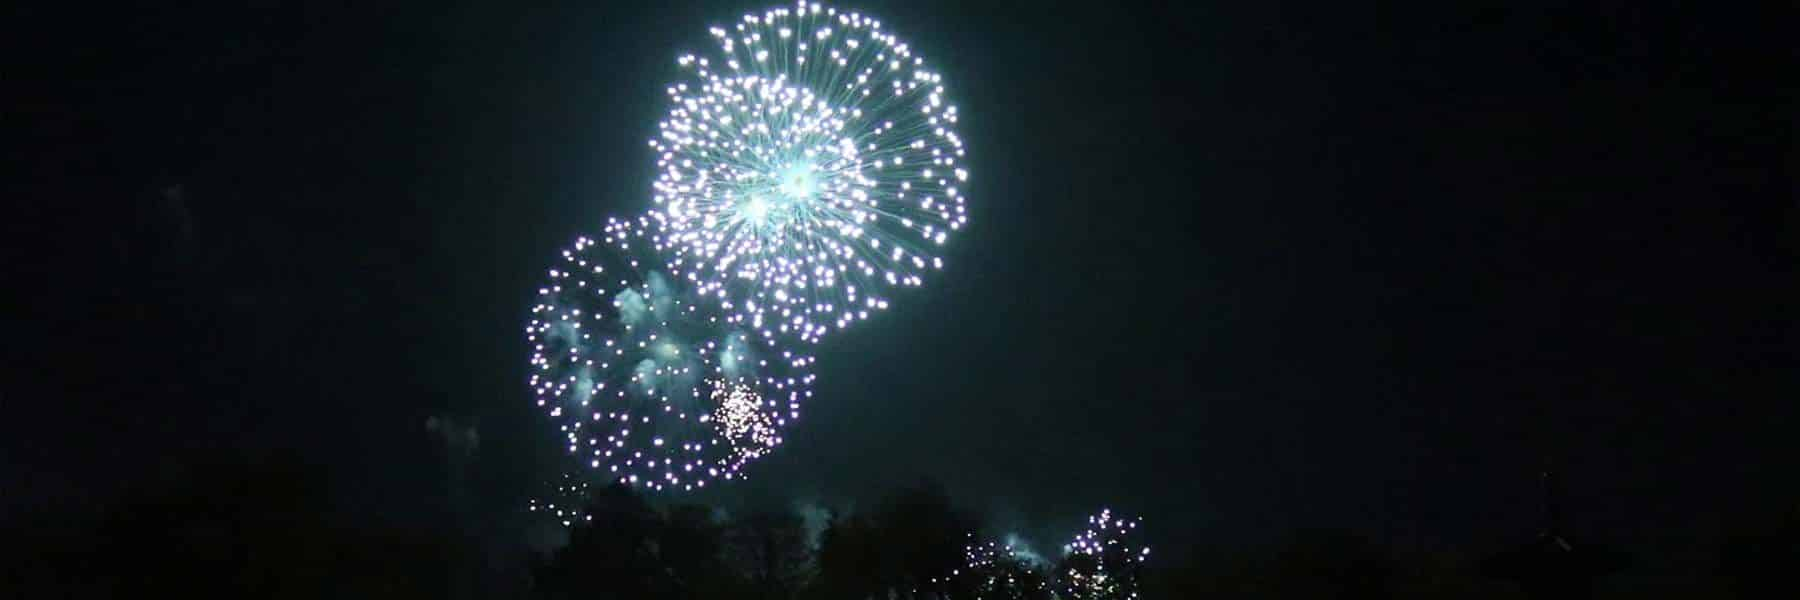 Battersea Park Fireworks Display